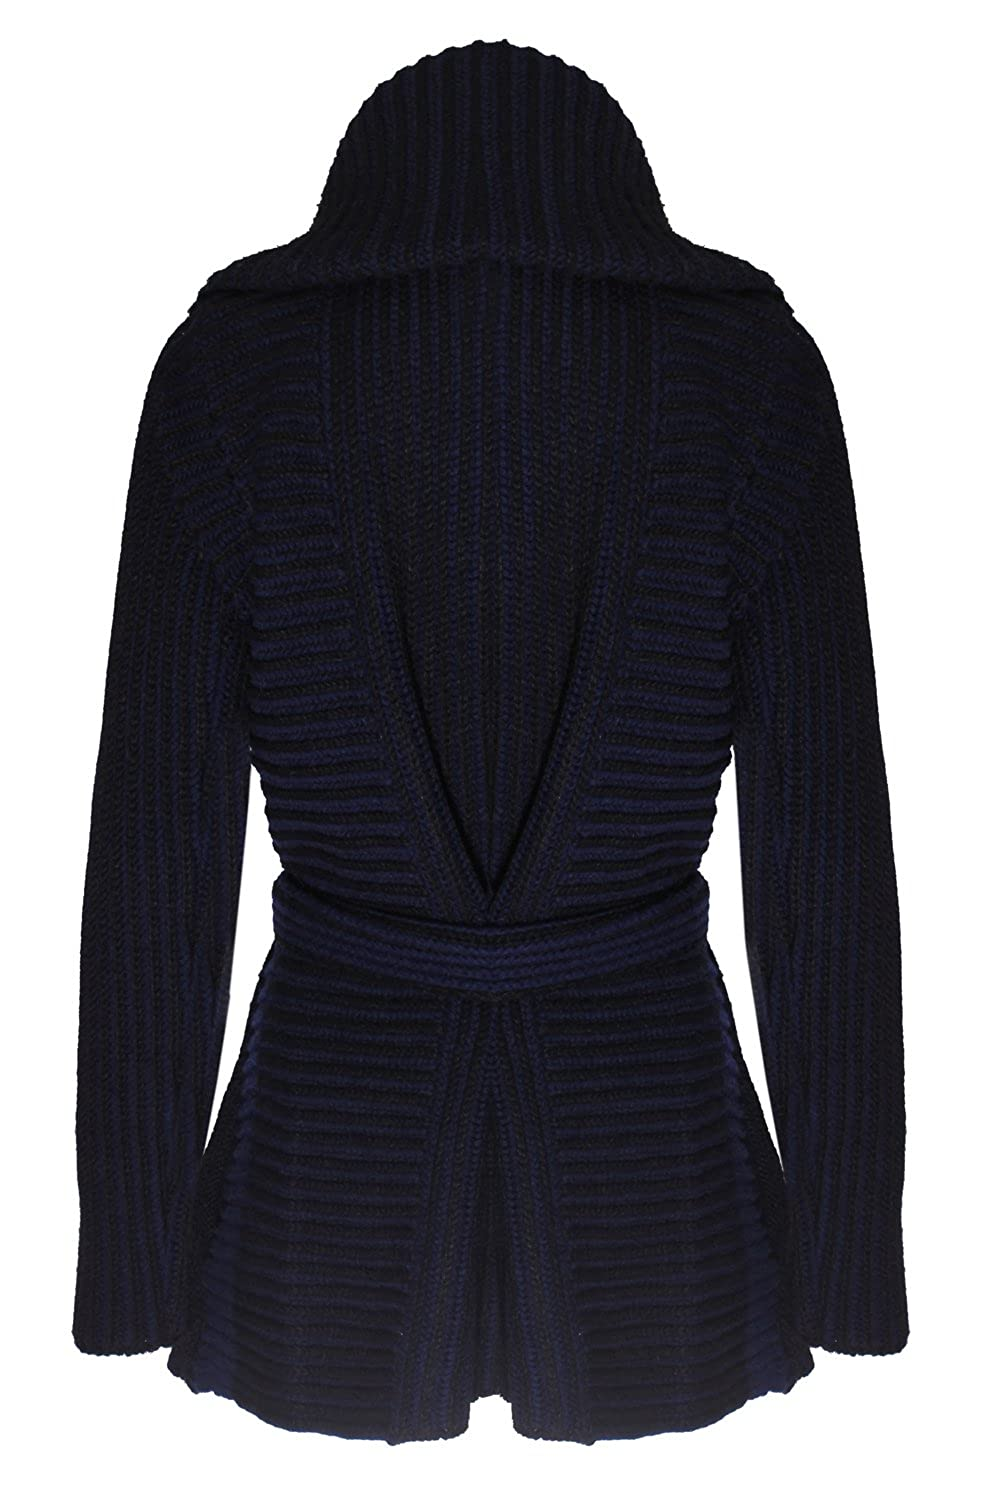 a4ccfa92 Amazon.com: See By Chloe Women's Belted Cardigan: Clothing